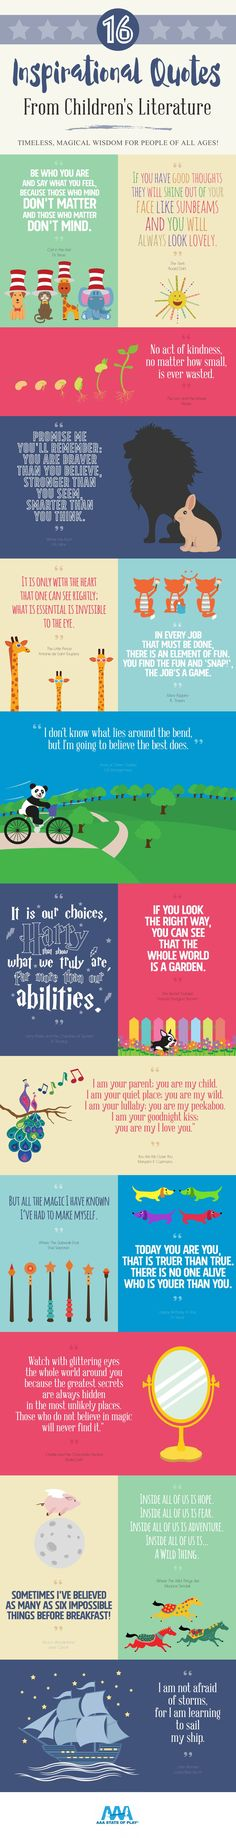 16 inspirational quotes from children s literature tips tipsographic tips tipsographic